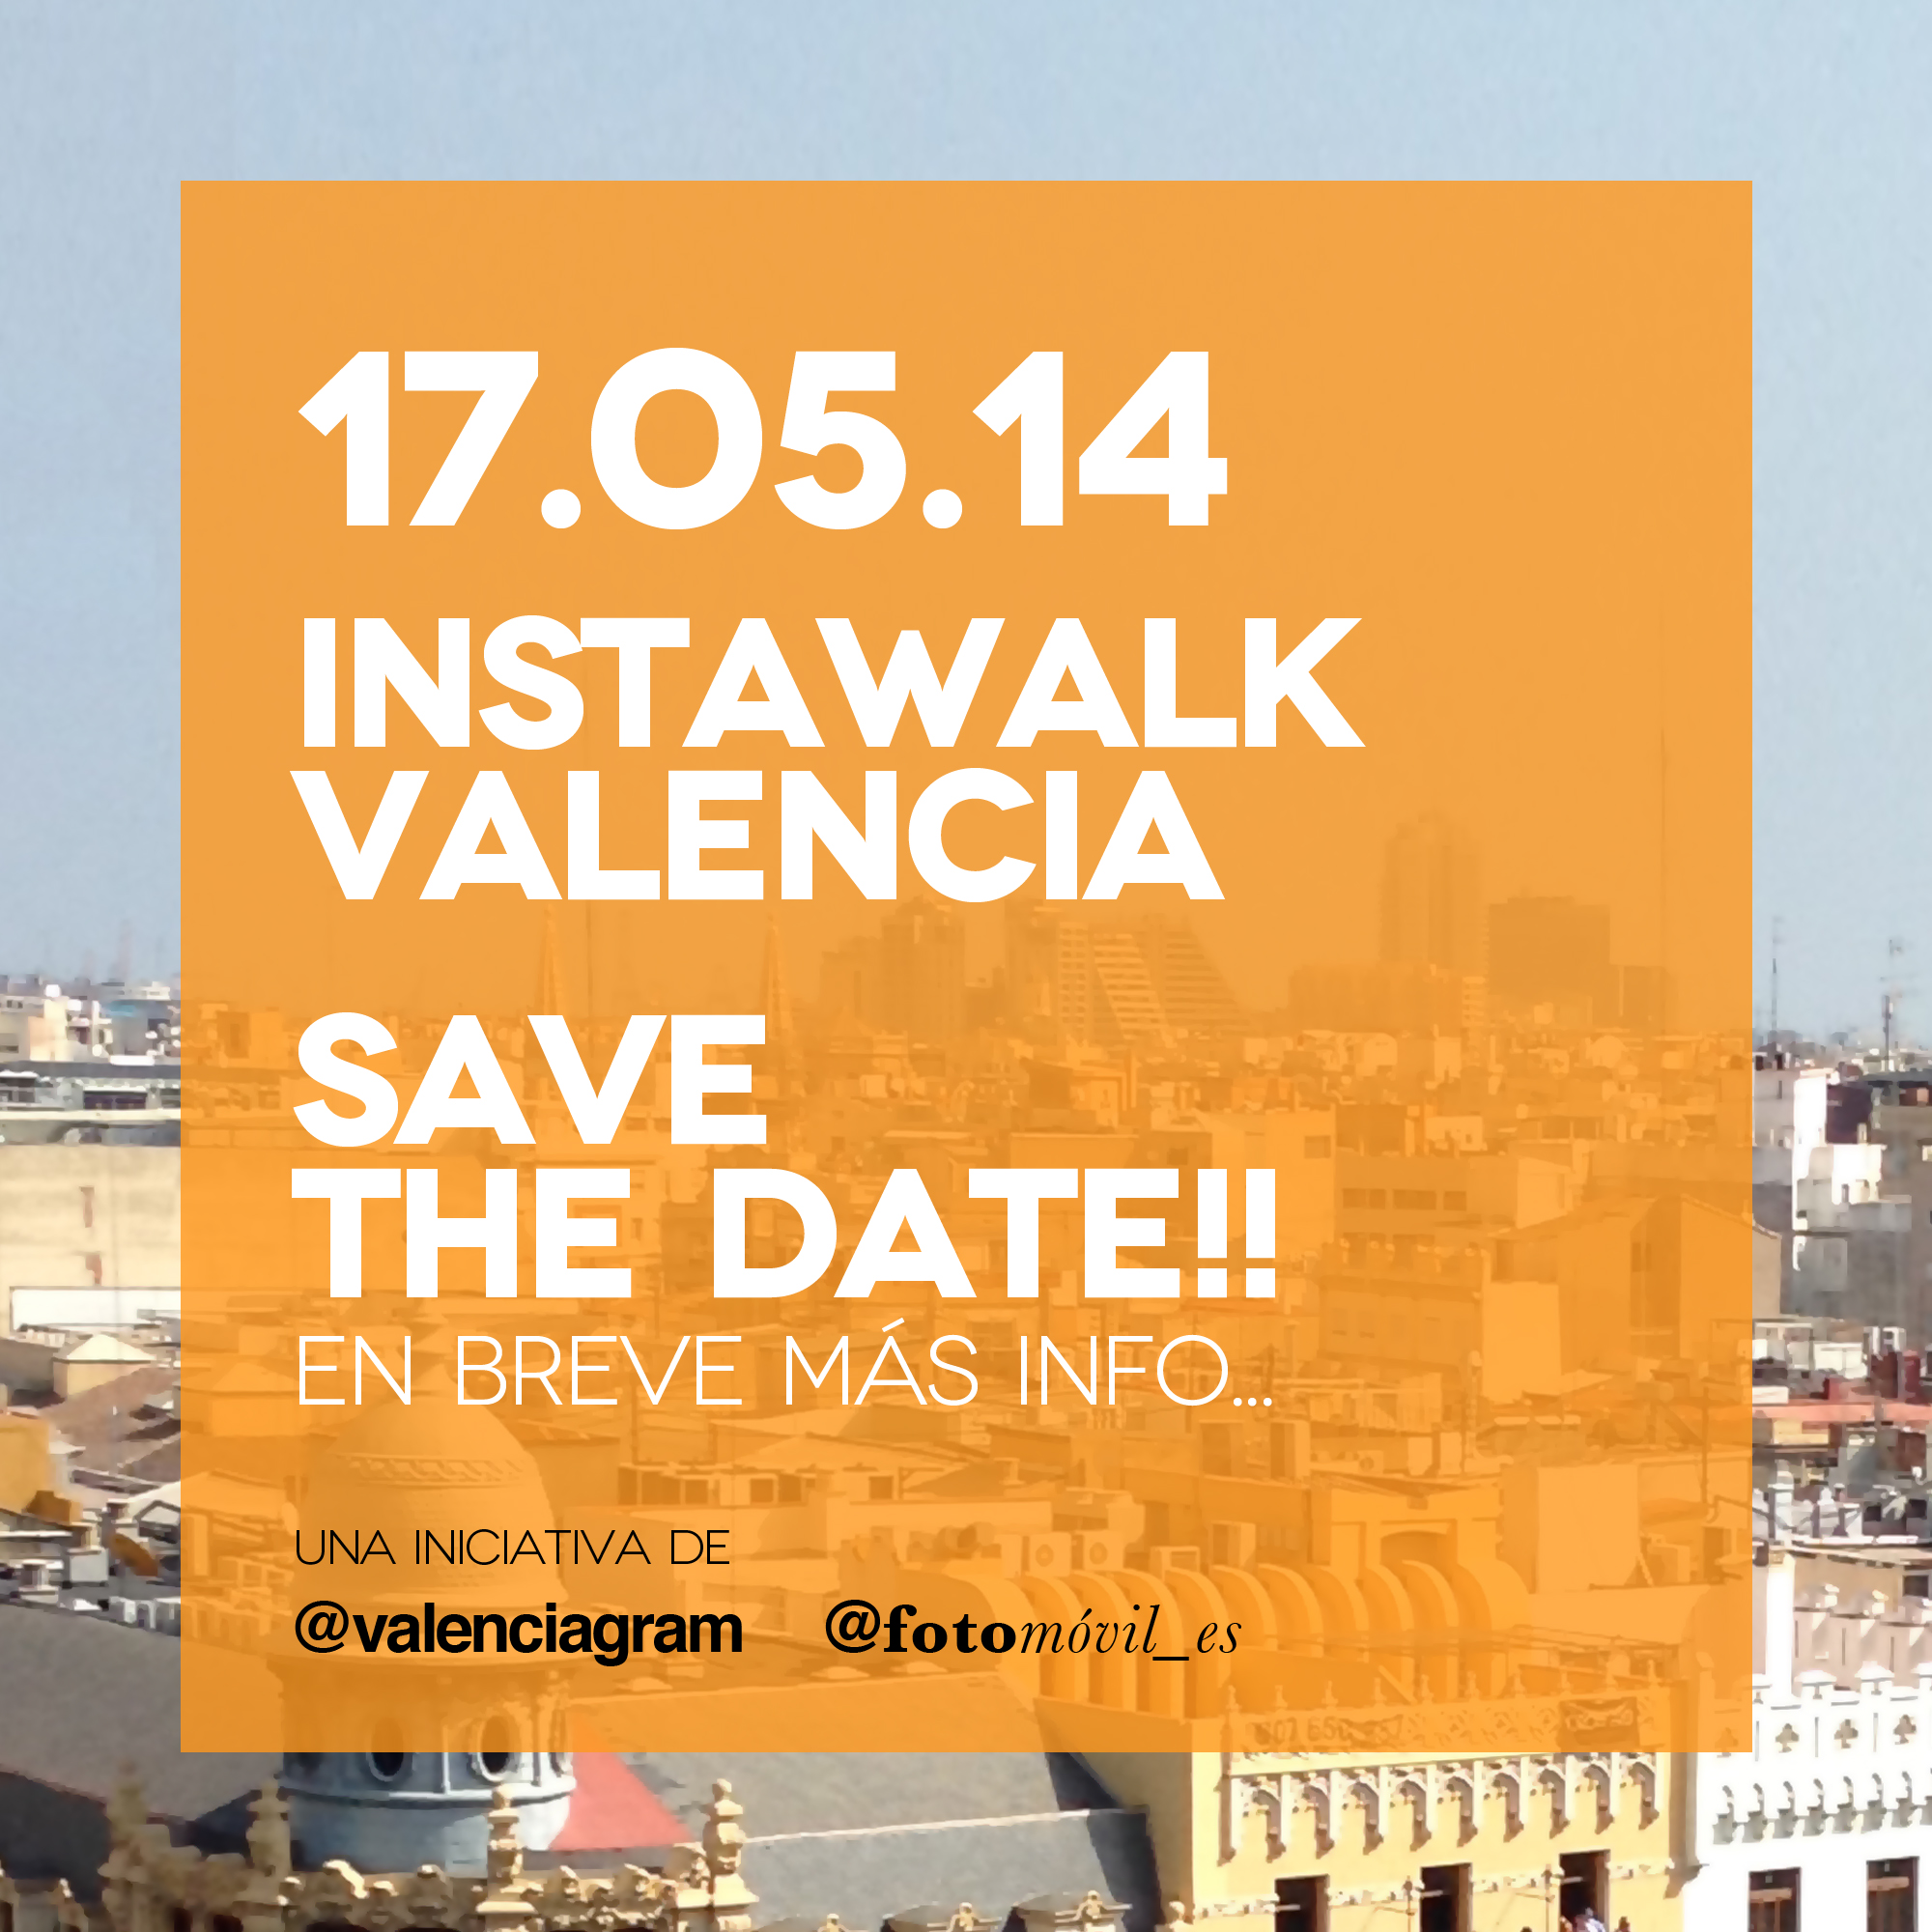 instawalk-valencia-save-the-date